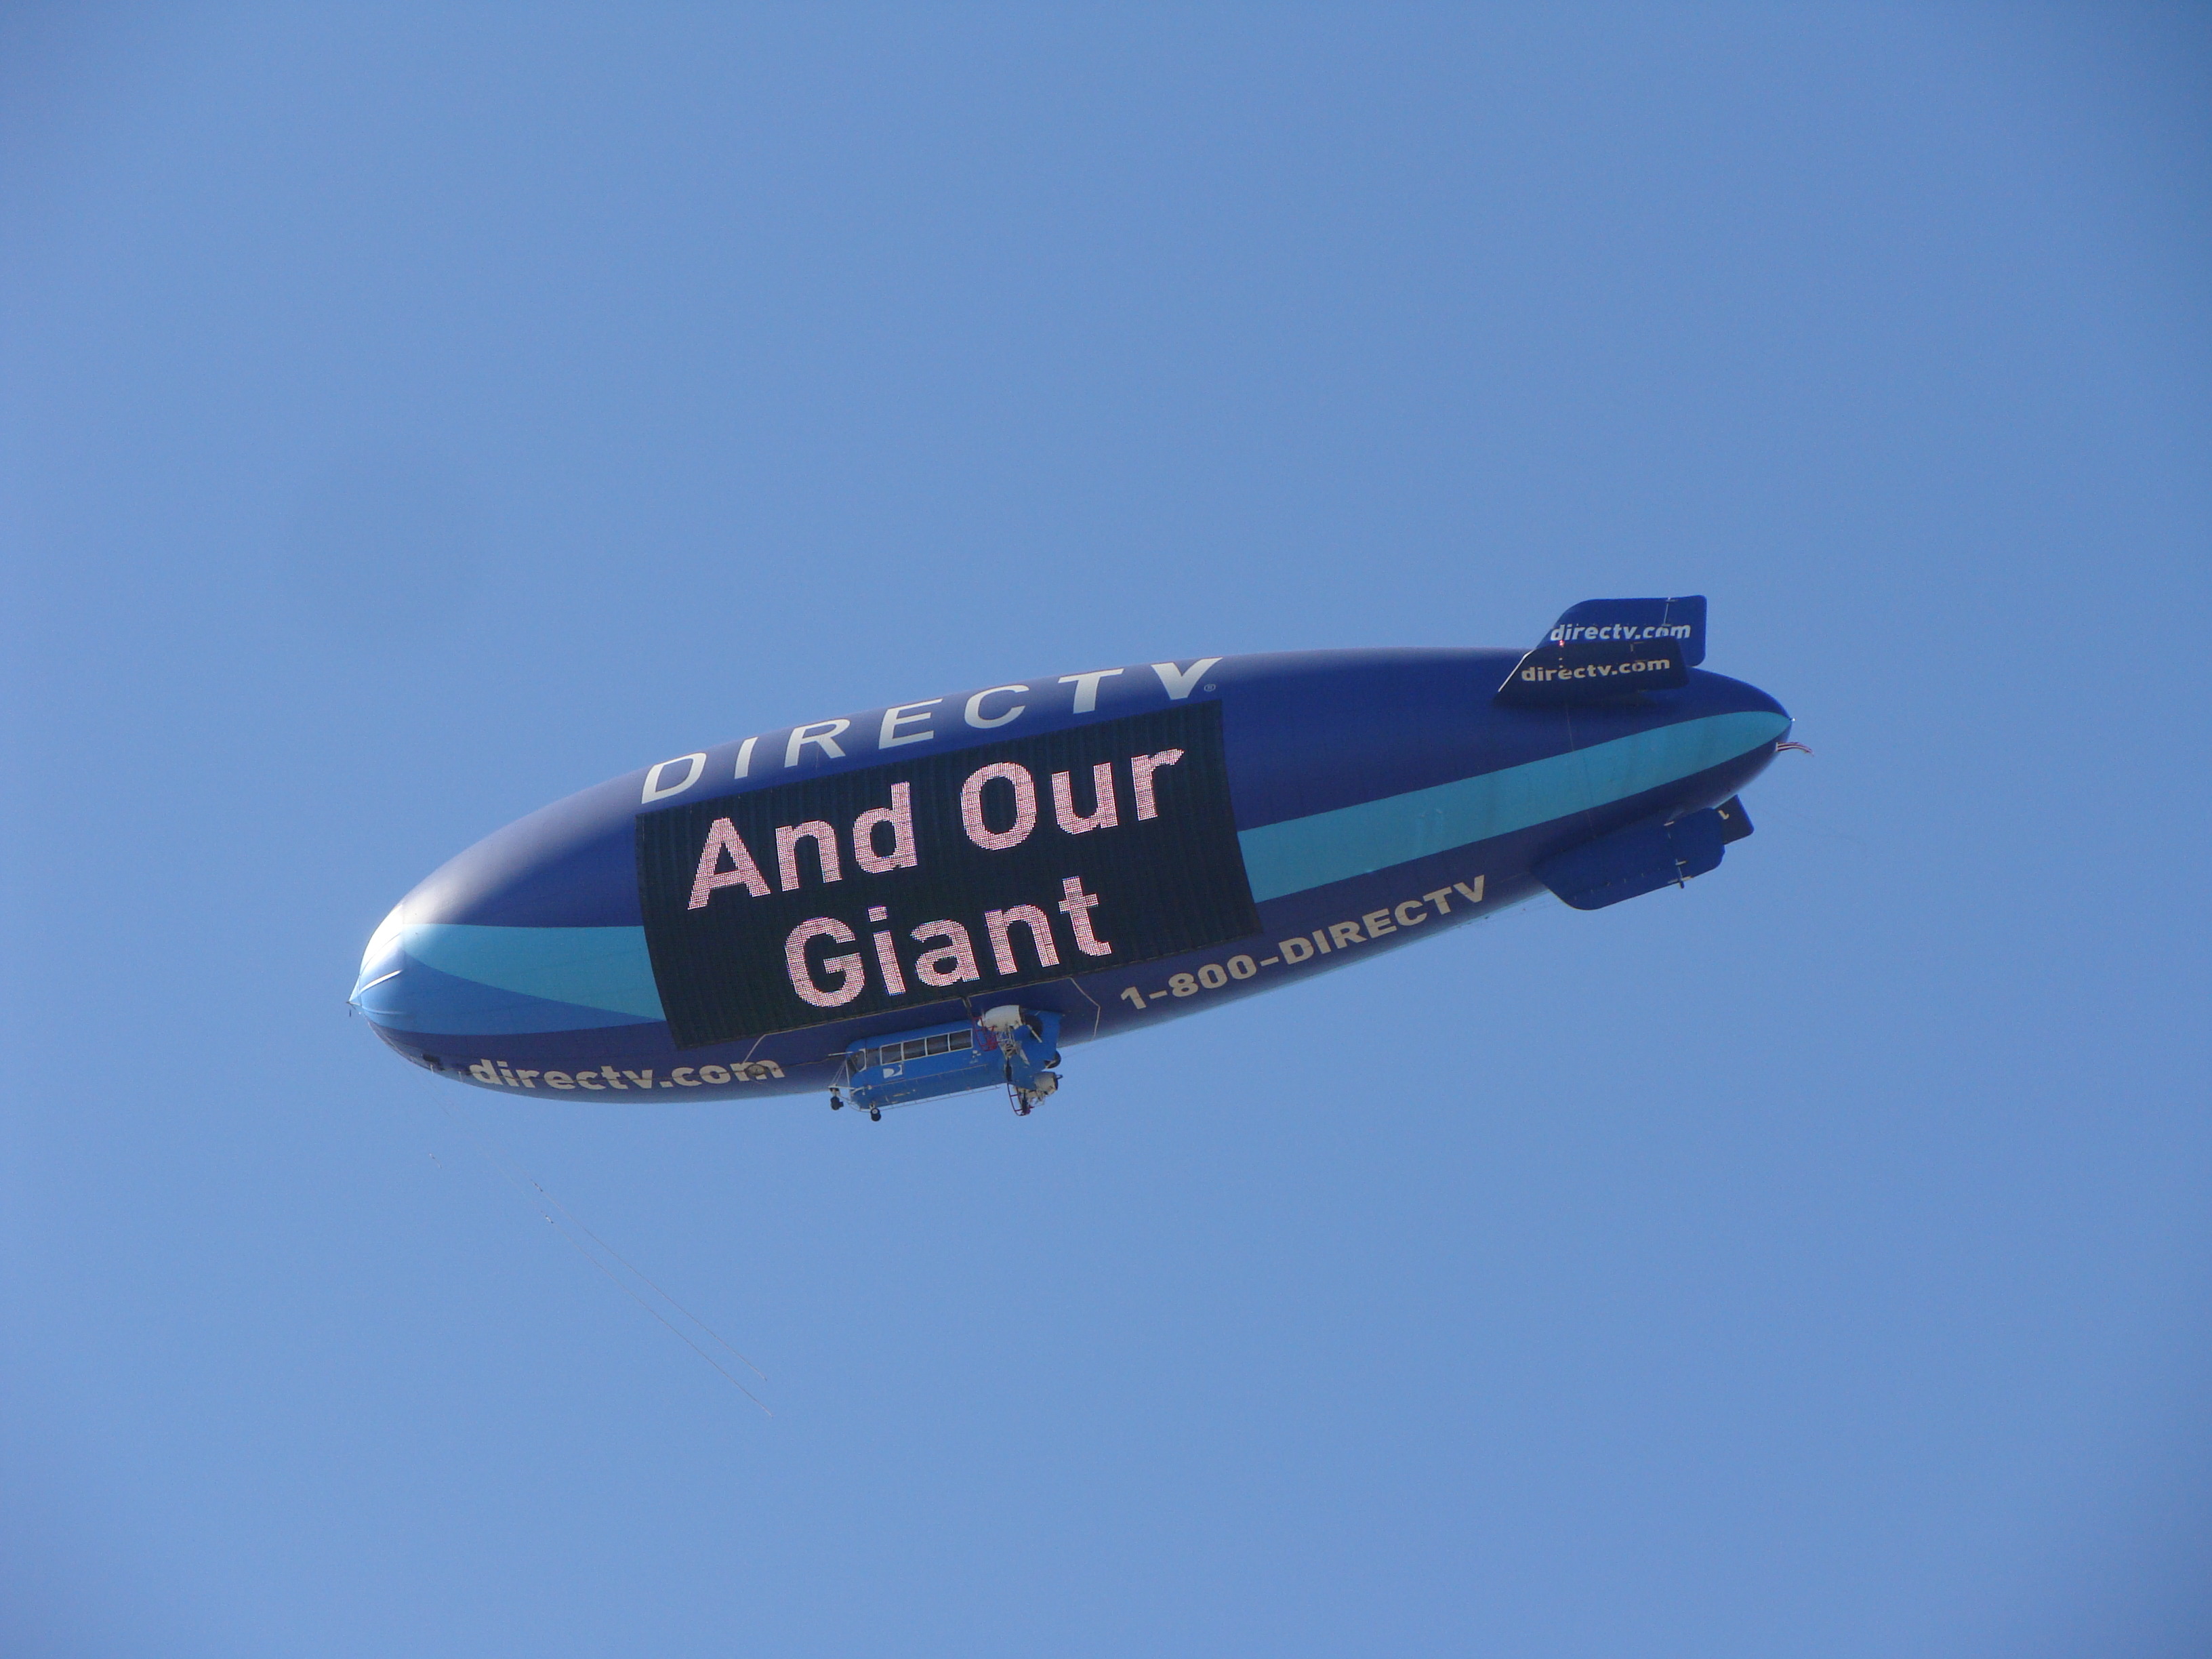 Description DIRECTV Blimp 1.jpg